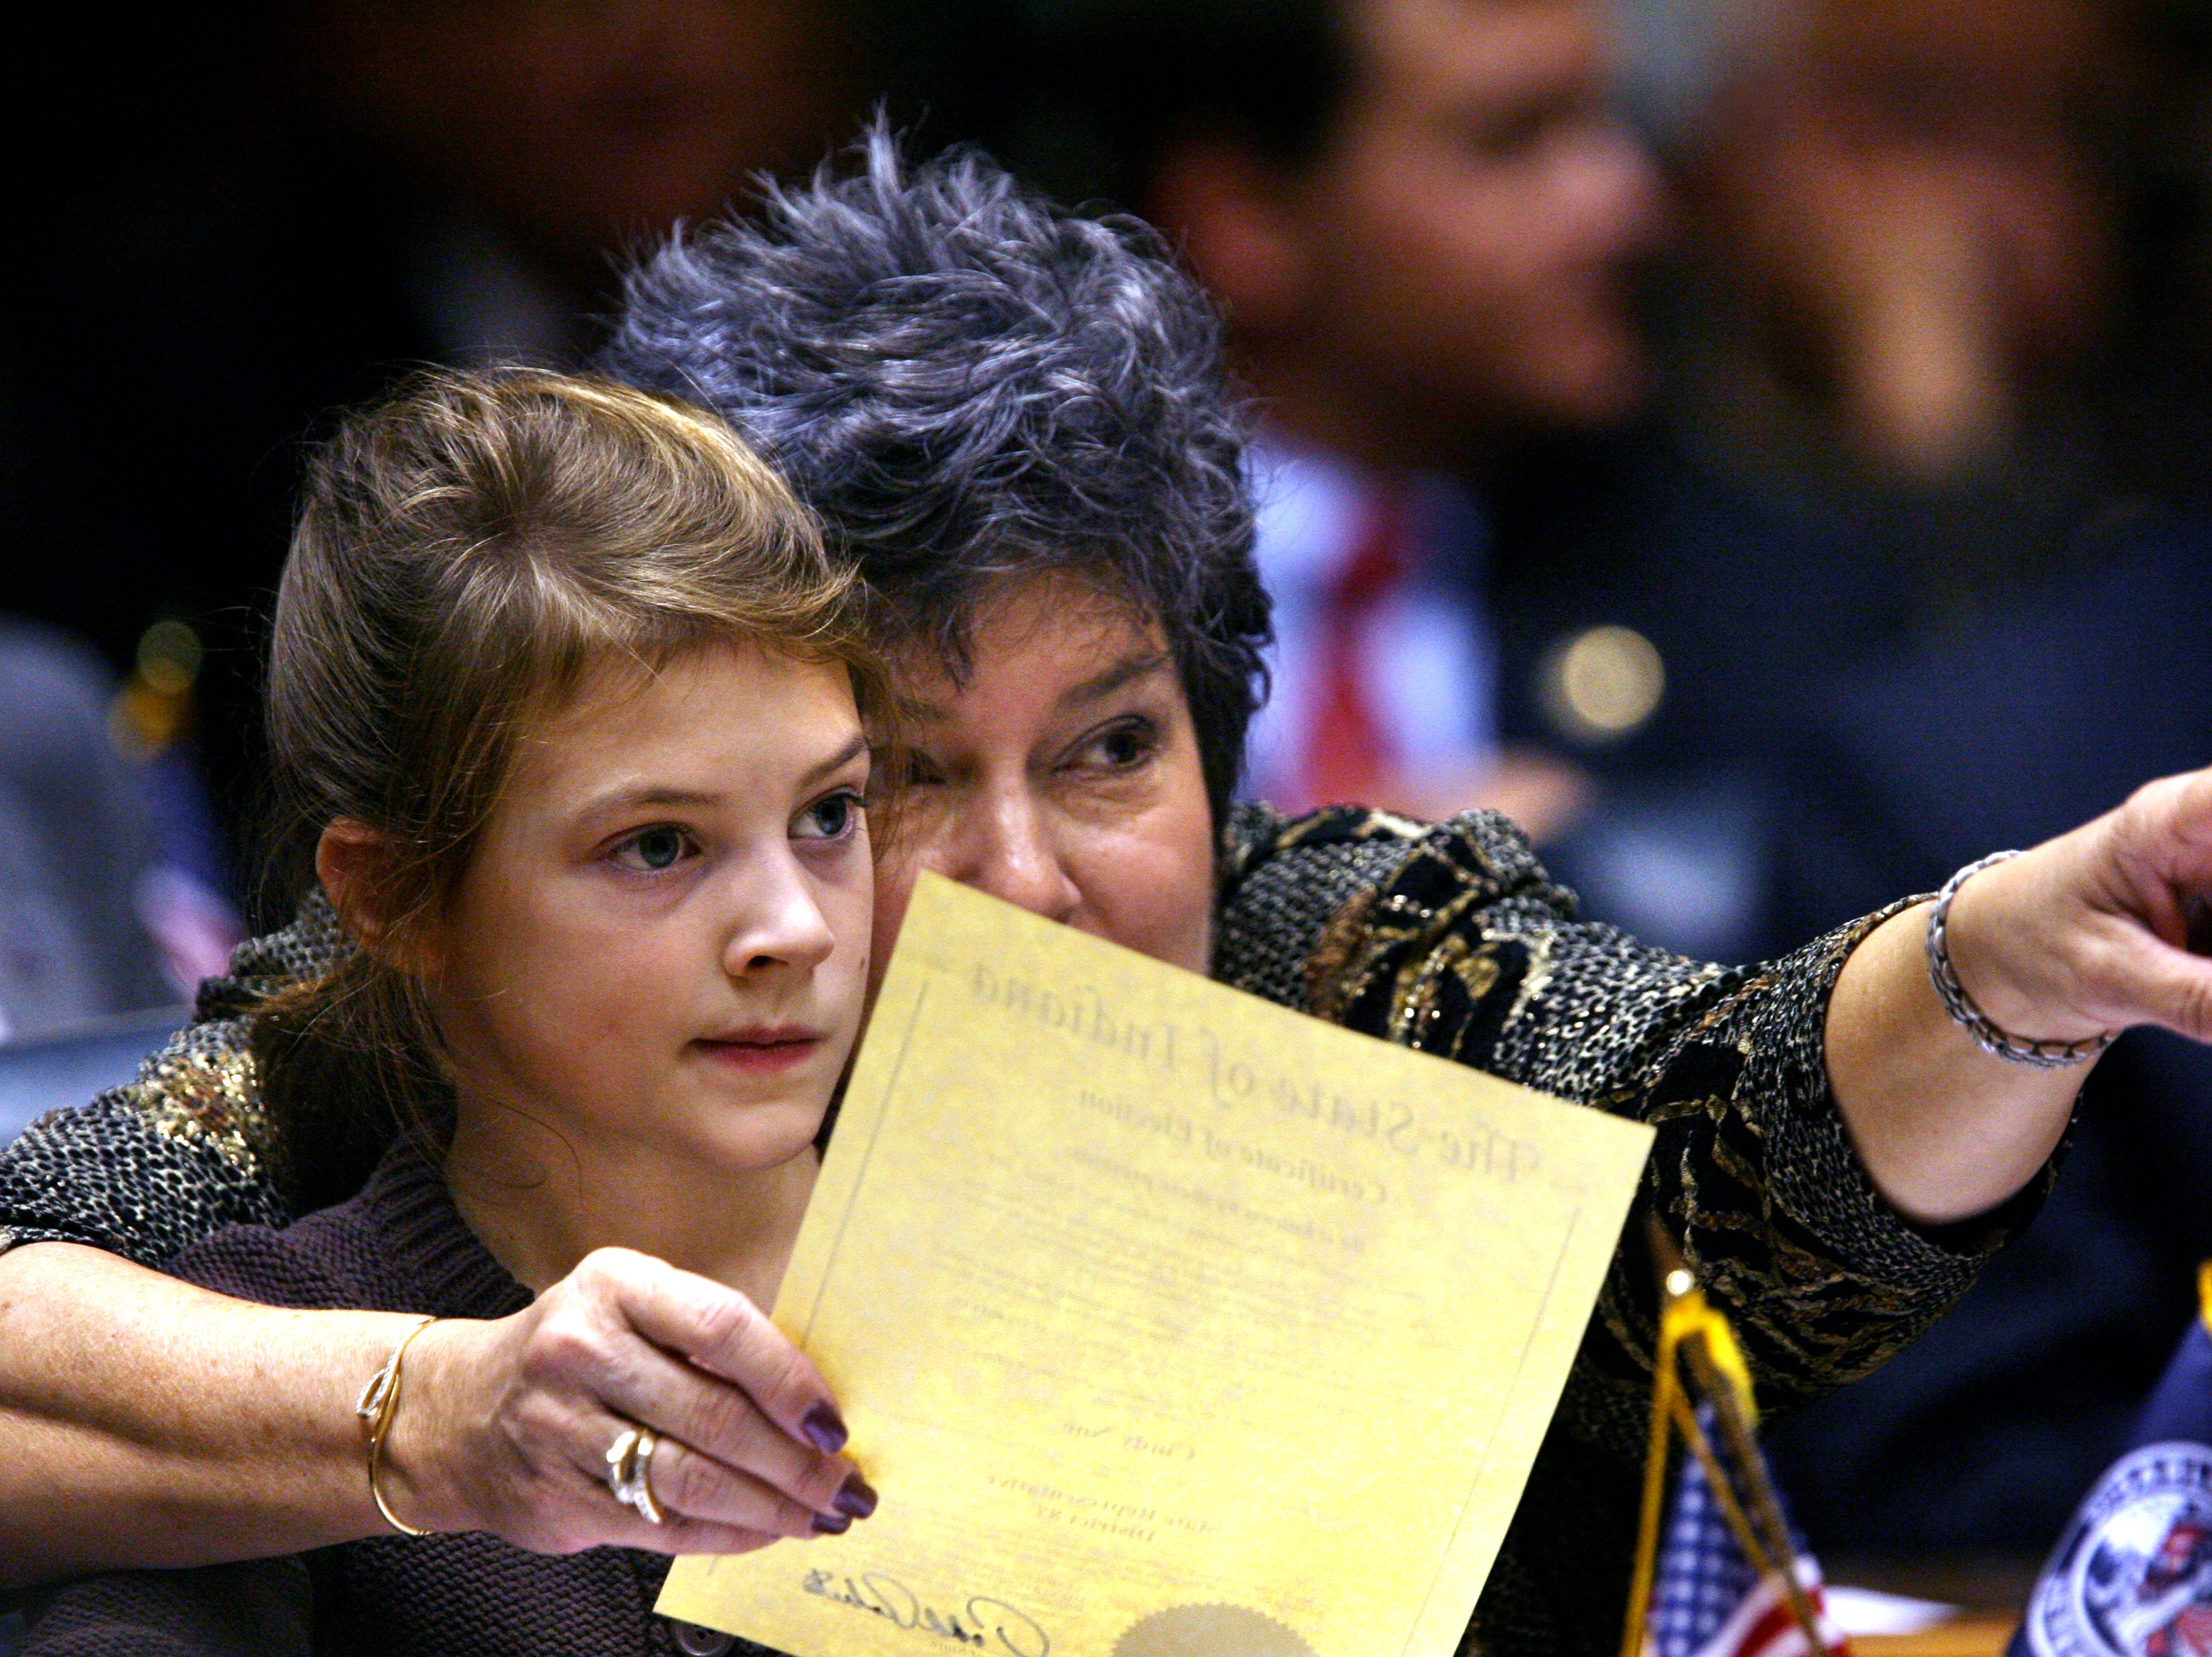 Rep. Cindy Noe, R-Indianapolis, points to the front of the House of Representatives with her granddaughter, Claire Nieshalla, 7, sitting on her lap as the Indiana House begins business on Organization Day at the Statehouse on Tuesday, November 18, 2008. Among the issues legislators are expected to tackle when the next session gets underway in January are the budget, property tax caps and education funding. (Charlie Nye / The Star).